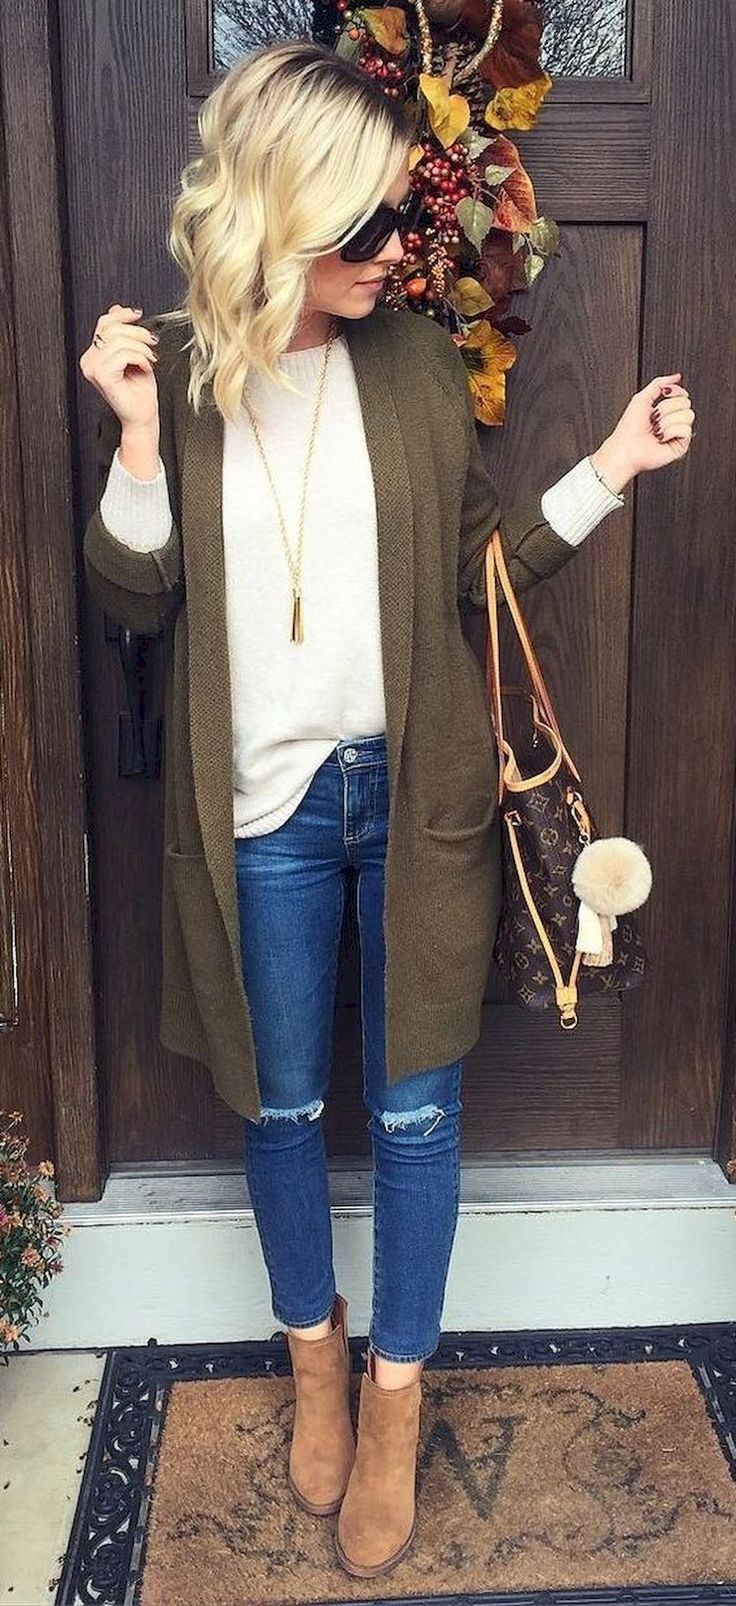 Gorgeous 80+ Fall Outfit Ideas with Cardigans for Women https://bitecloth.com/2018/01/17/80-fall-outfit-ideas-cardigans-women/